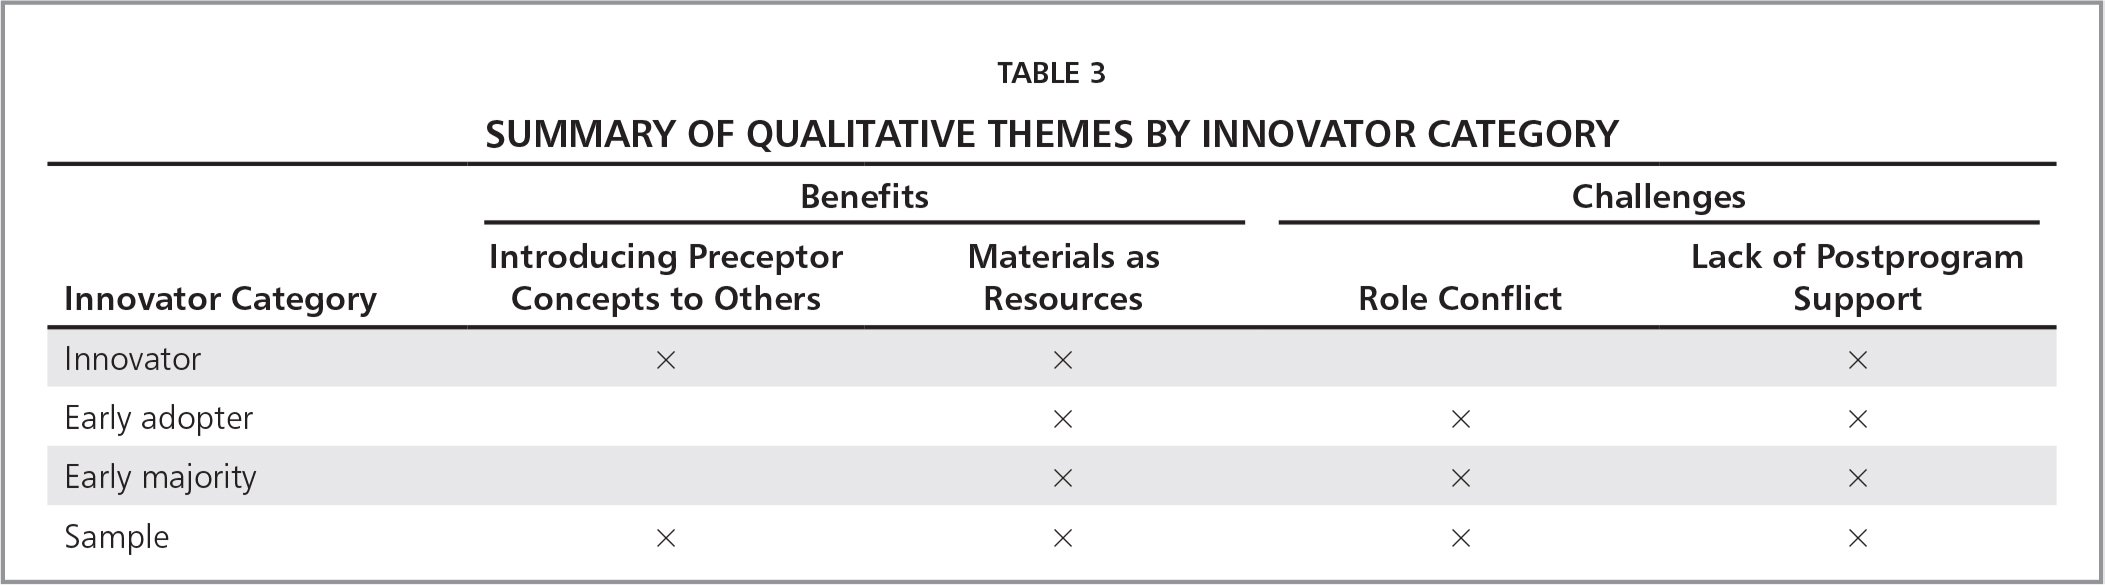 Summary of Qualitative Themes by Innovator Category